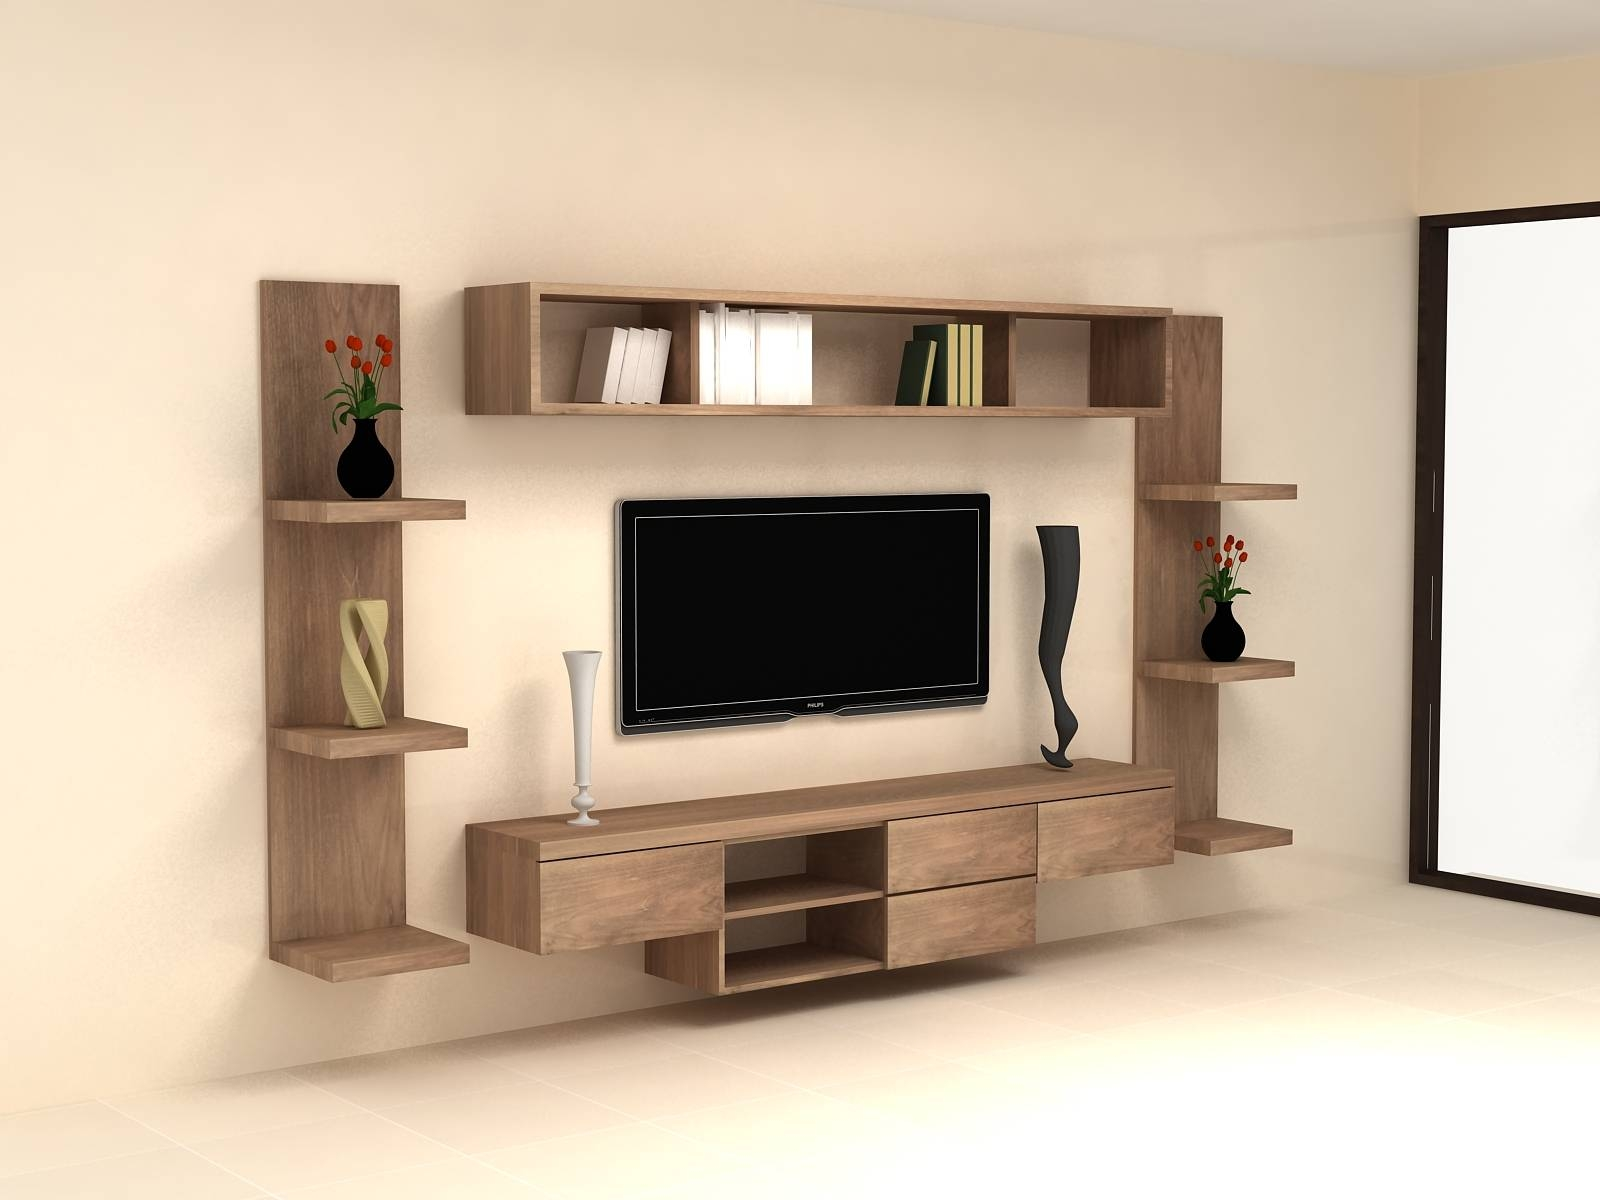 Wall Units. Amusing Tv Cabinet On Wall: Interesting-Tv-Cabinet-On inside Tv Cabinets And Wall Units (Image 8 of 15)